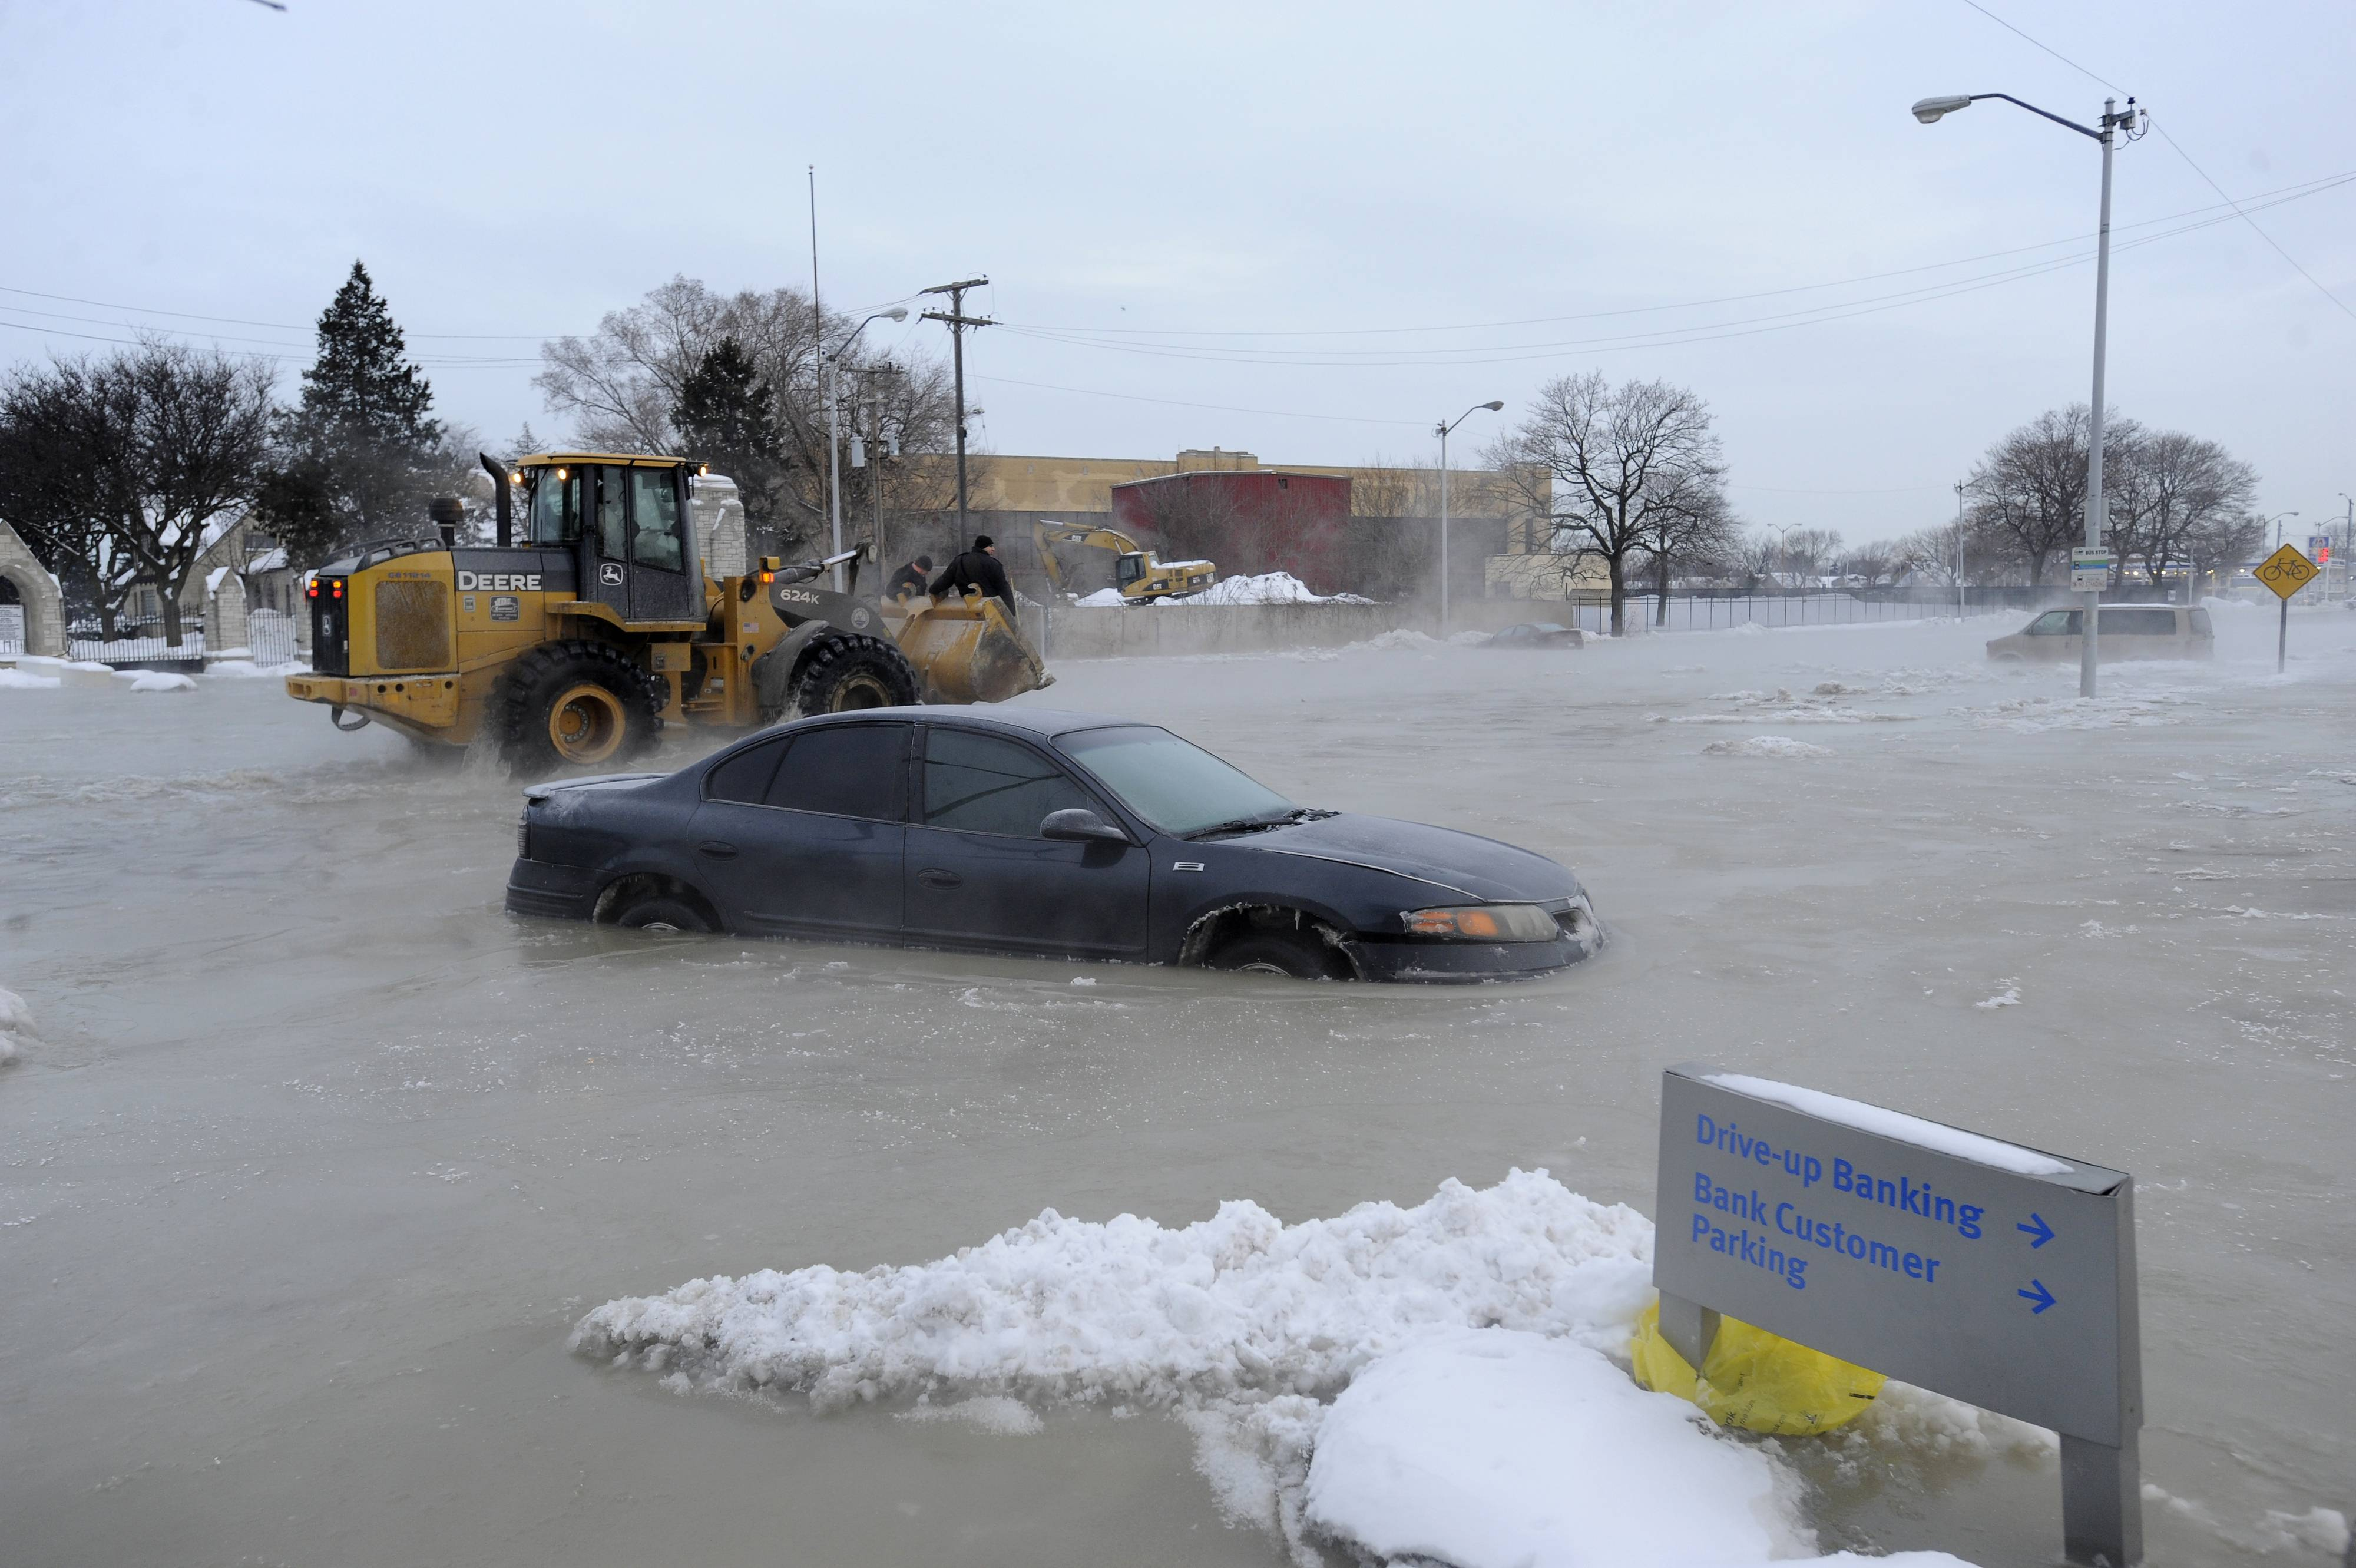 Street flooding caused by a water main break on Friday, Feb. 7, 2014 on Detroit's east side left several vehicles stuck in water and ice, prompting a rescue by police officers on construction equipment. The break was reported about 5 a.m. Friday in the area of Gratiot Avenue at Conner Street. Police and firefighters responded to help free motorists. The scoop of a front-end loader was used to carry two people stranded in a minivan. Crews also worked to clear ice and water from the area, which is closed to traffic. No injuries were reported.